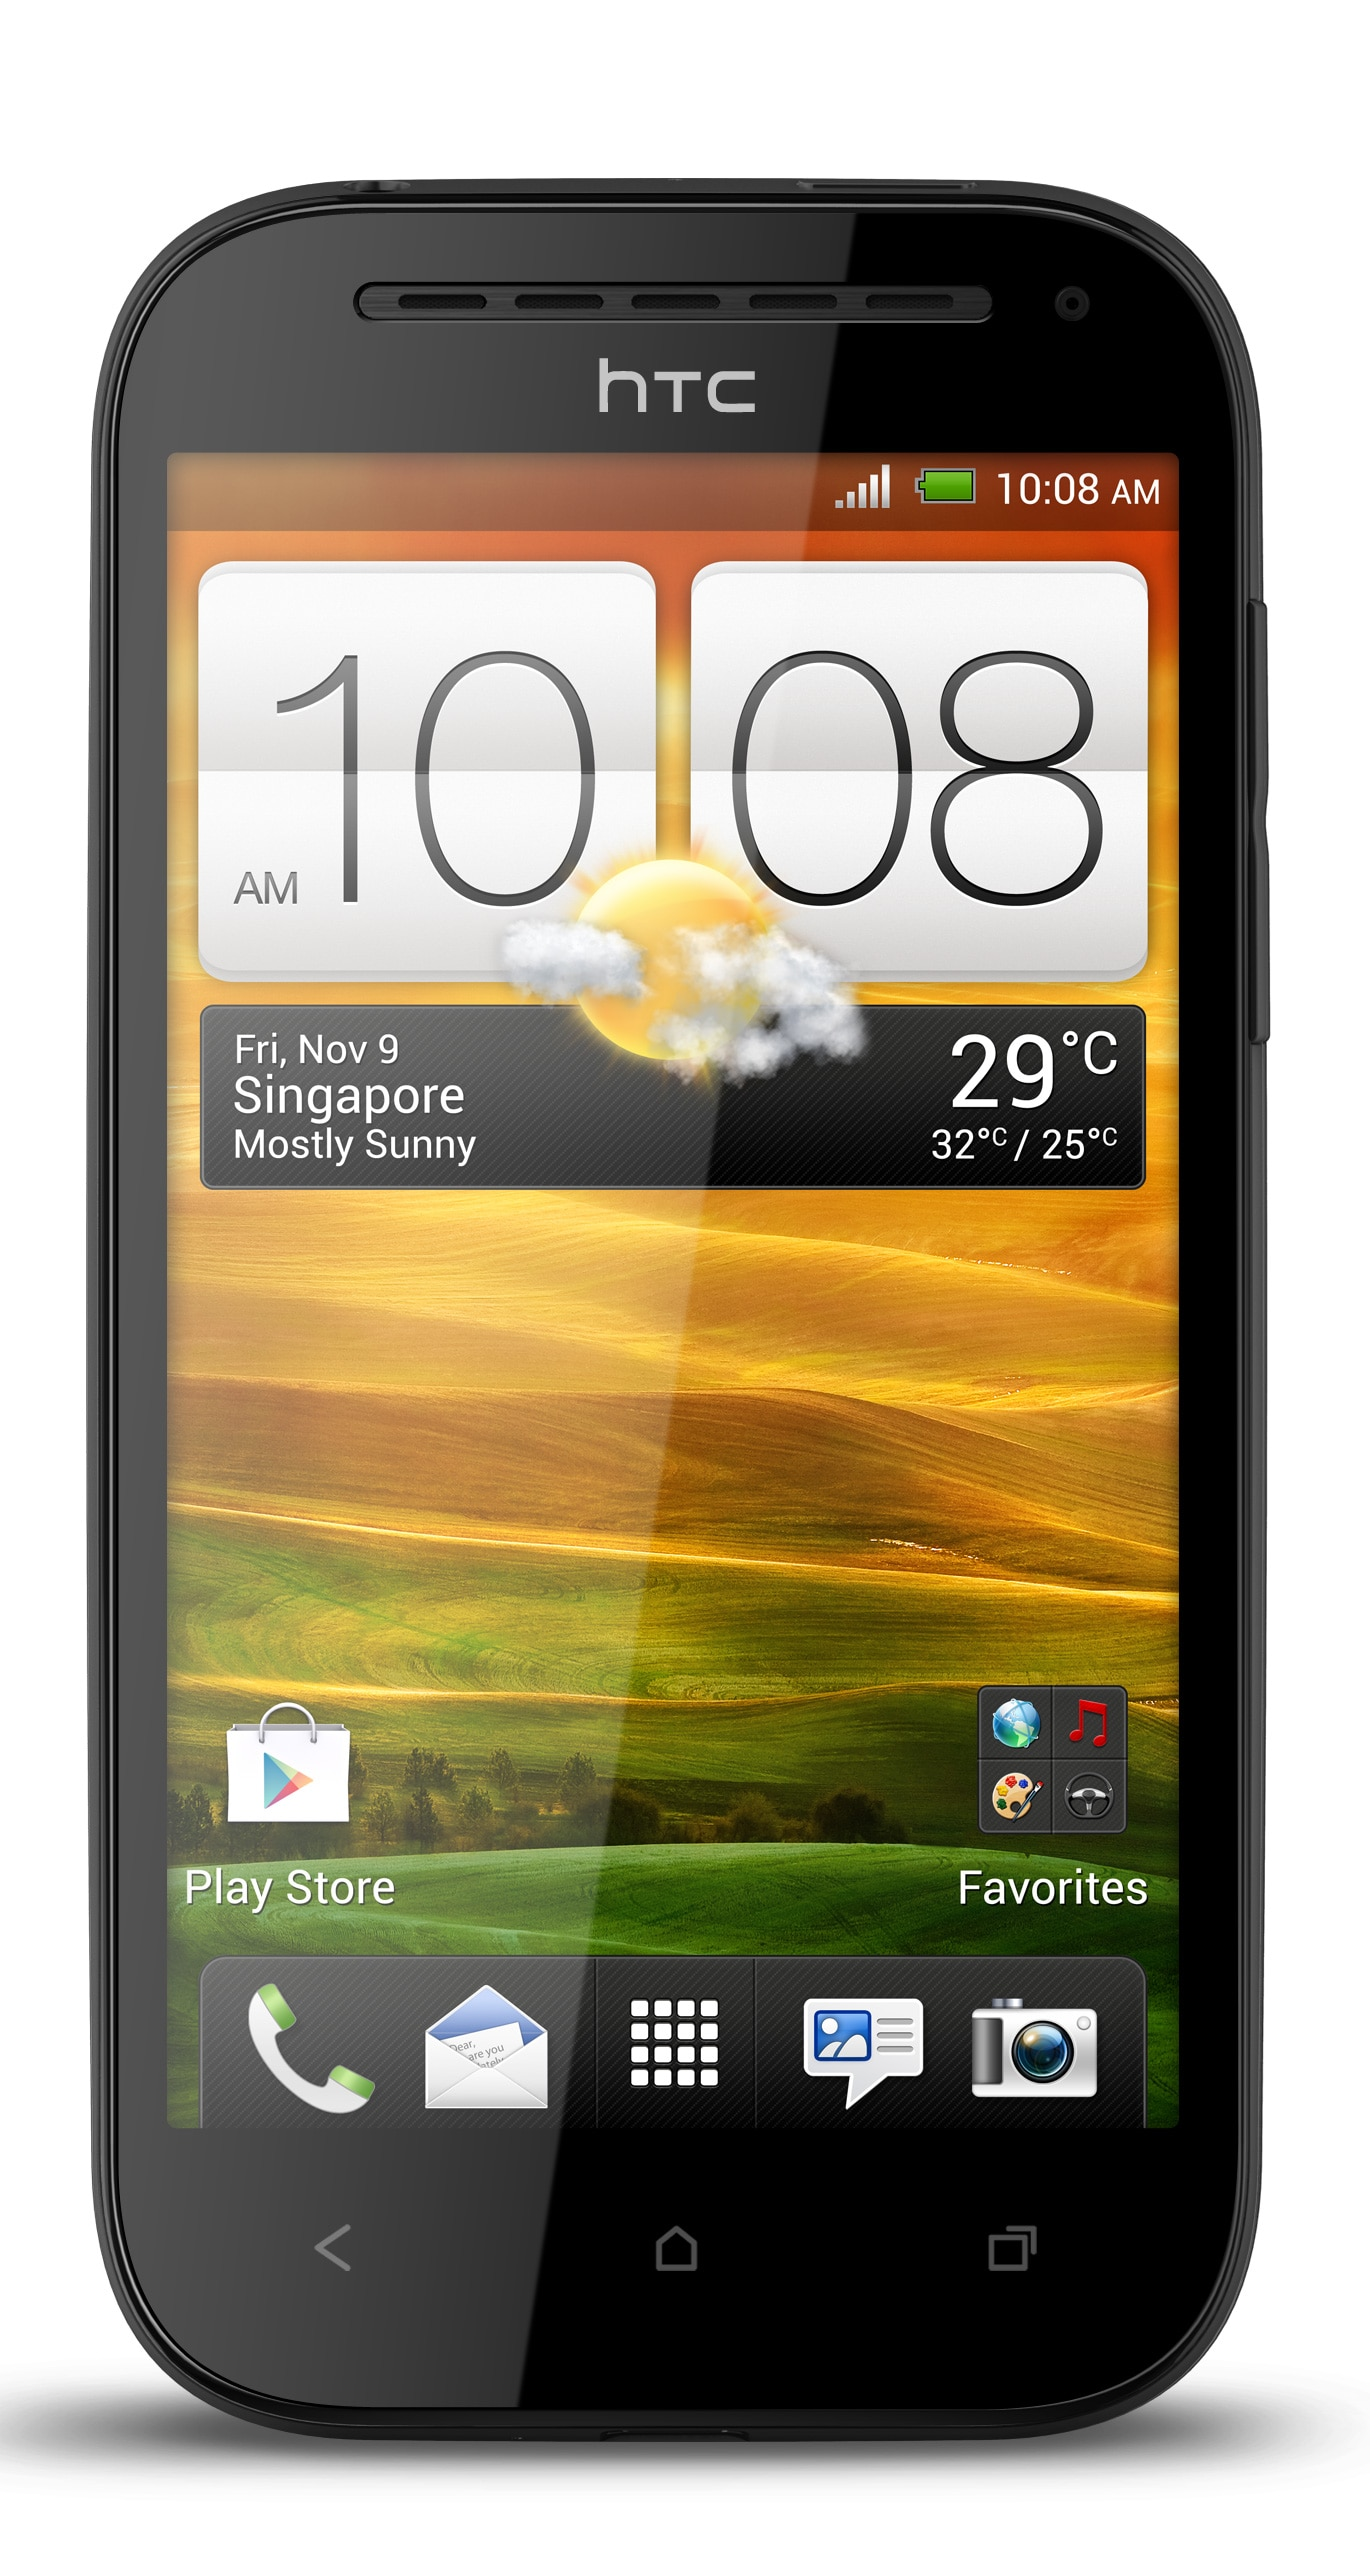 htc one sv specs and reviews htc singapore rh htc com HTC One Mini HTC One Mini